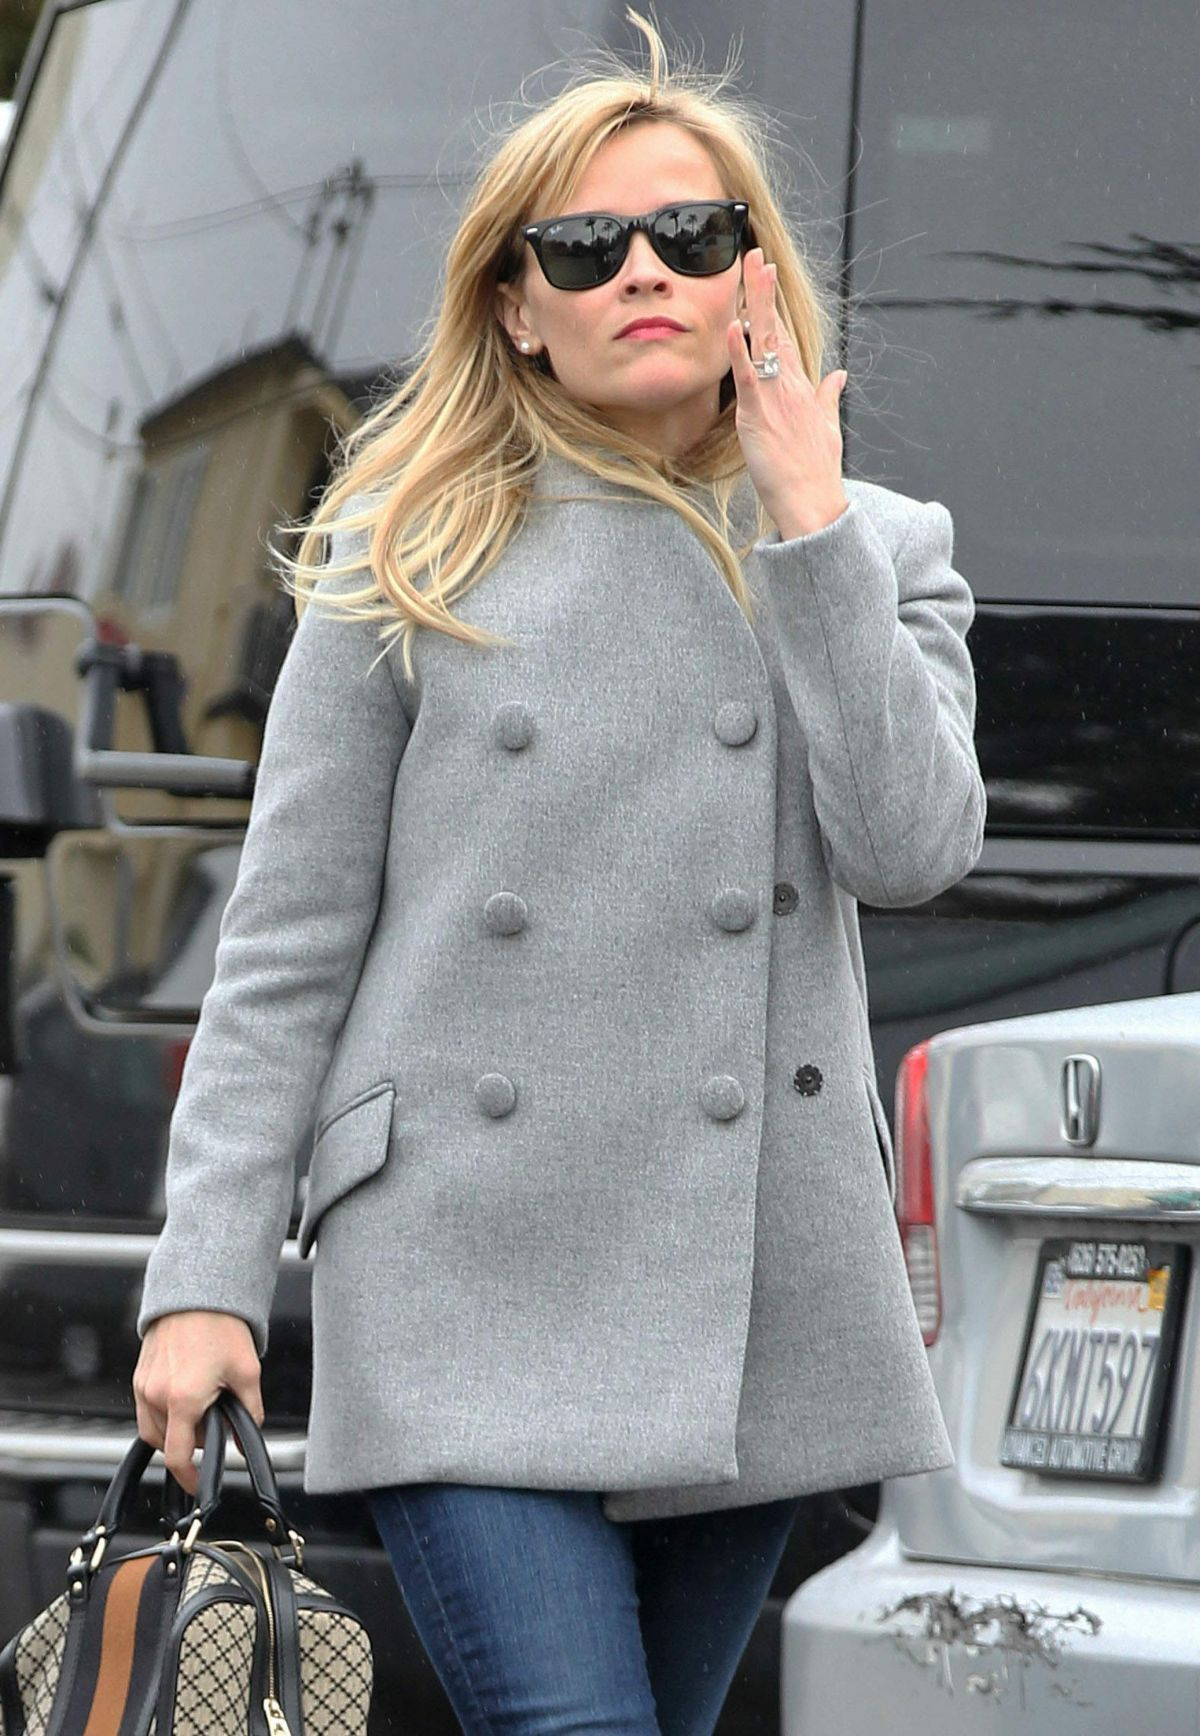 REESE WITHERSPOON at Christmas Shopping in Brentwood 1812